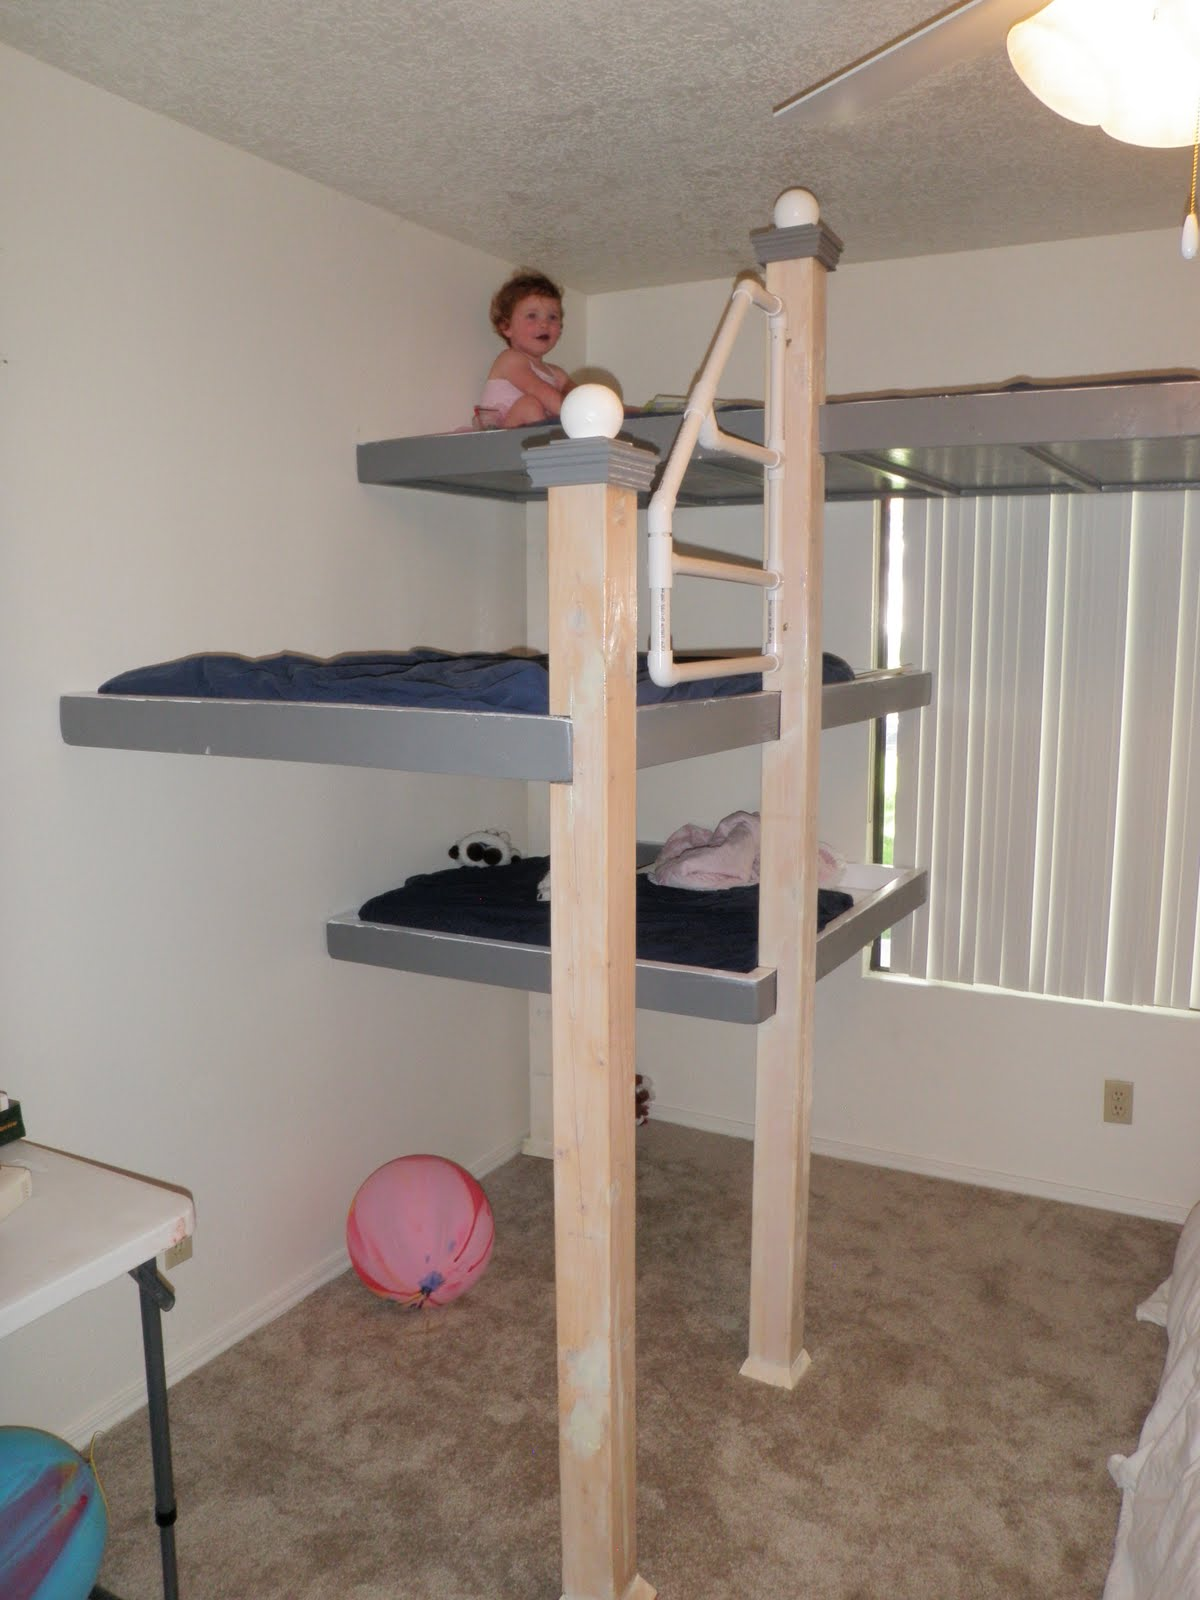 Coolest Bunk Beds in the World 1200 x 1600